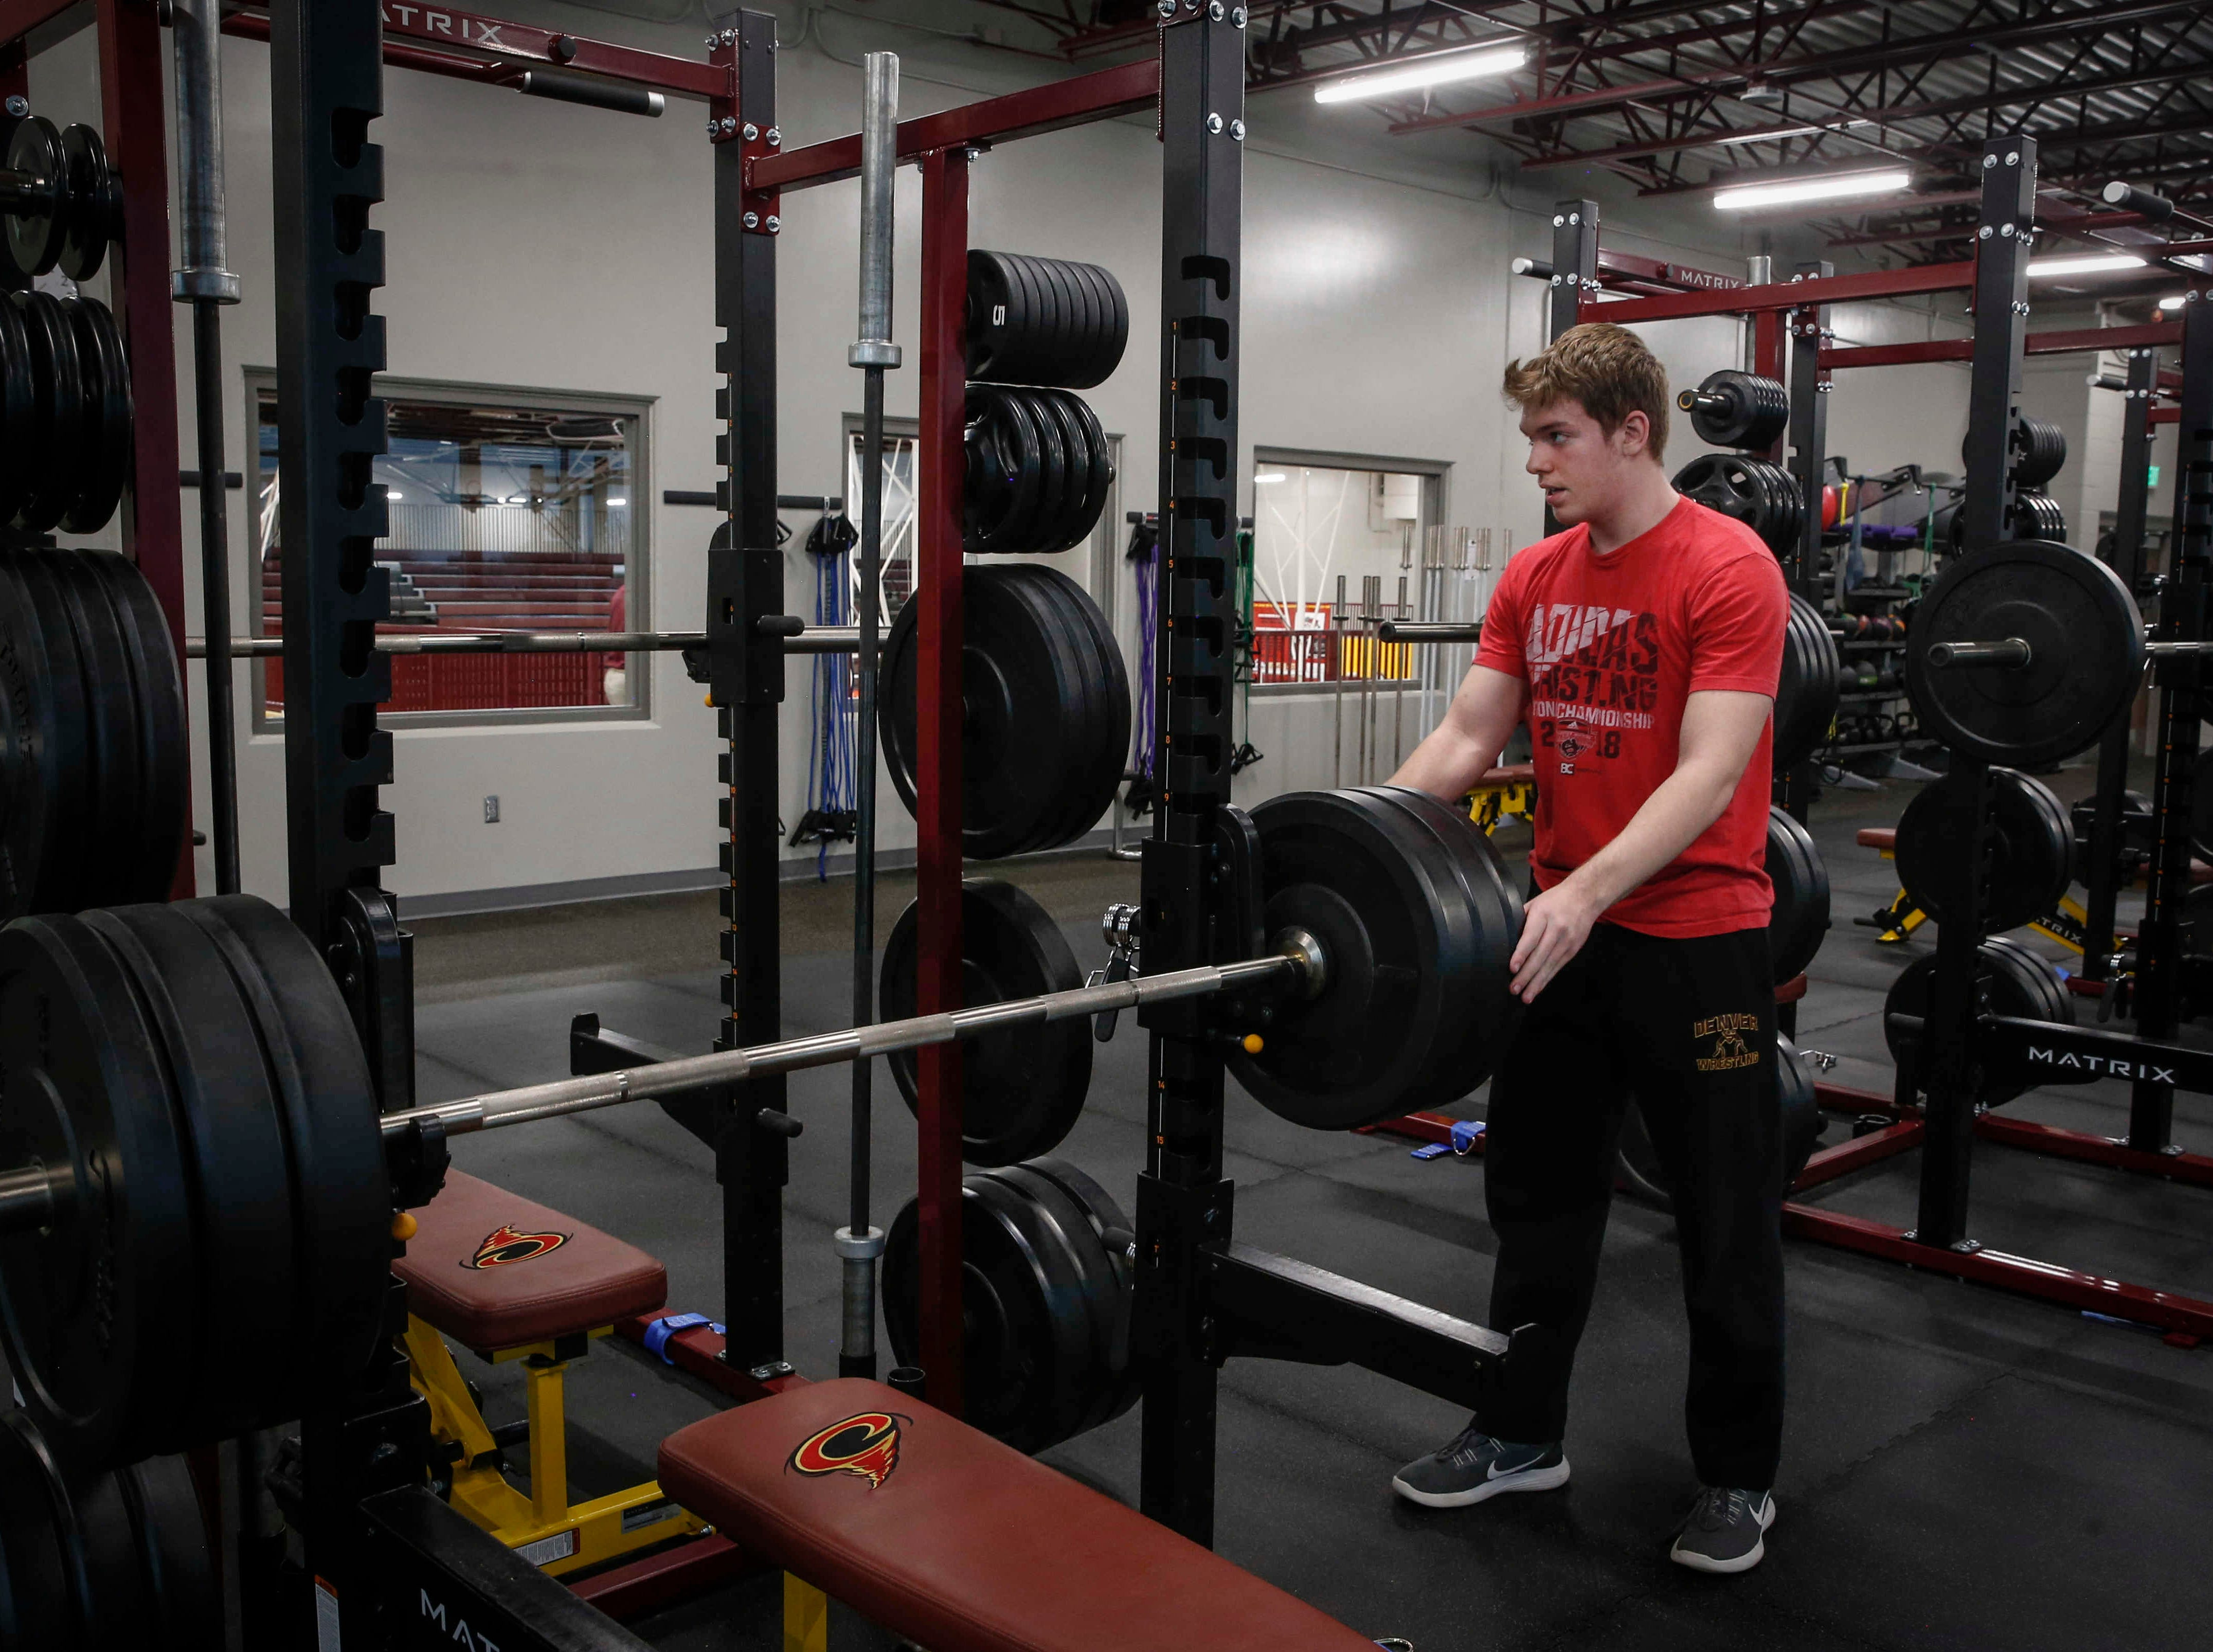 Denver sophomore Cam Krueger works out in the weight room at Denver High School in Denver on Tuesday, Jan. 15, 2019. Krueger, who was born legally blind, says weight lifting is something he is passionate about.